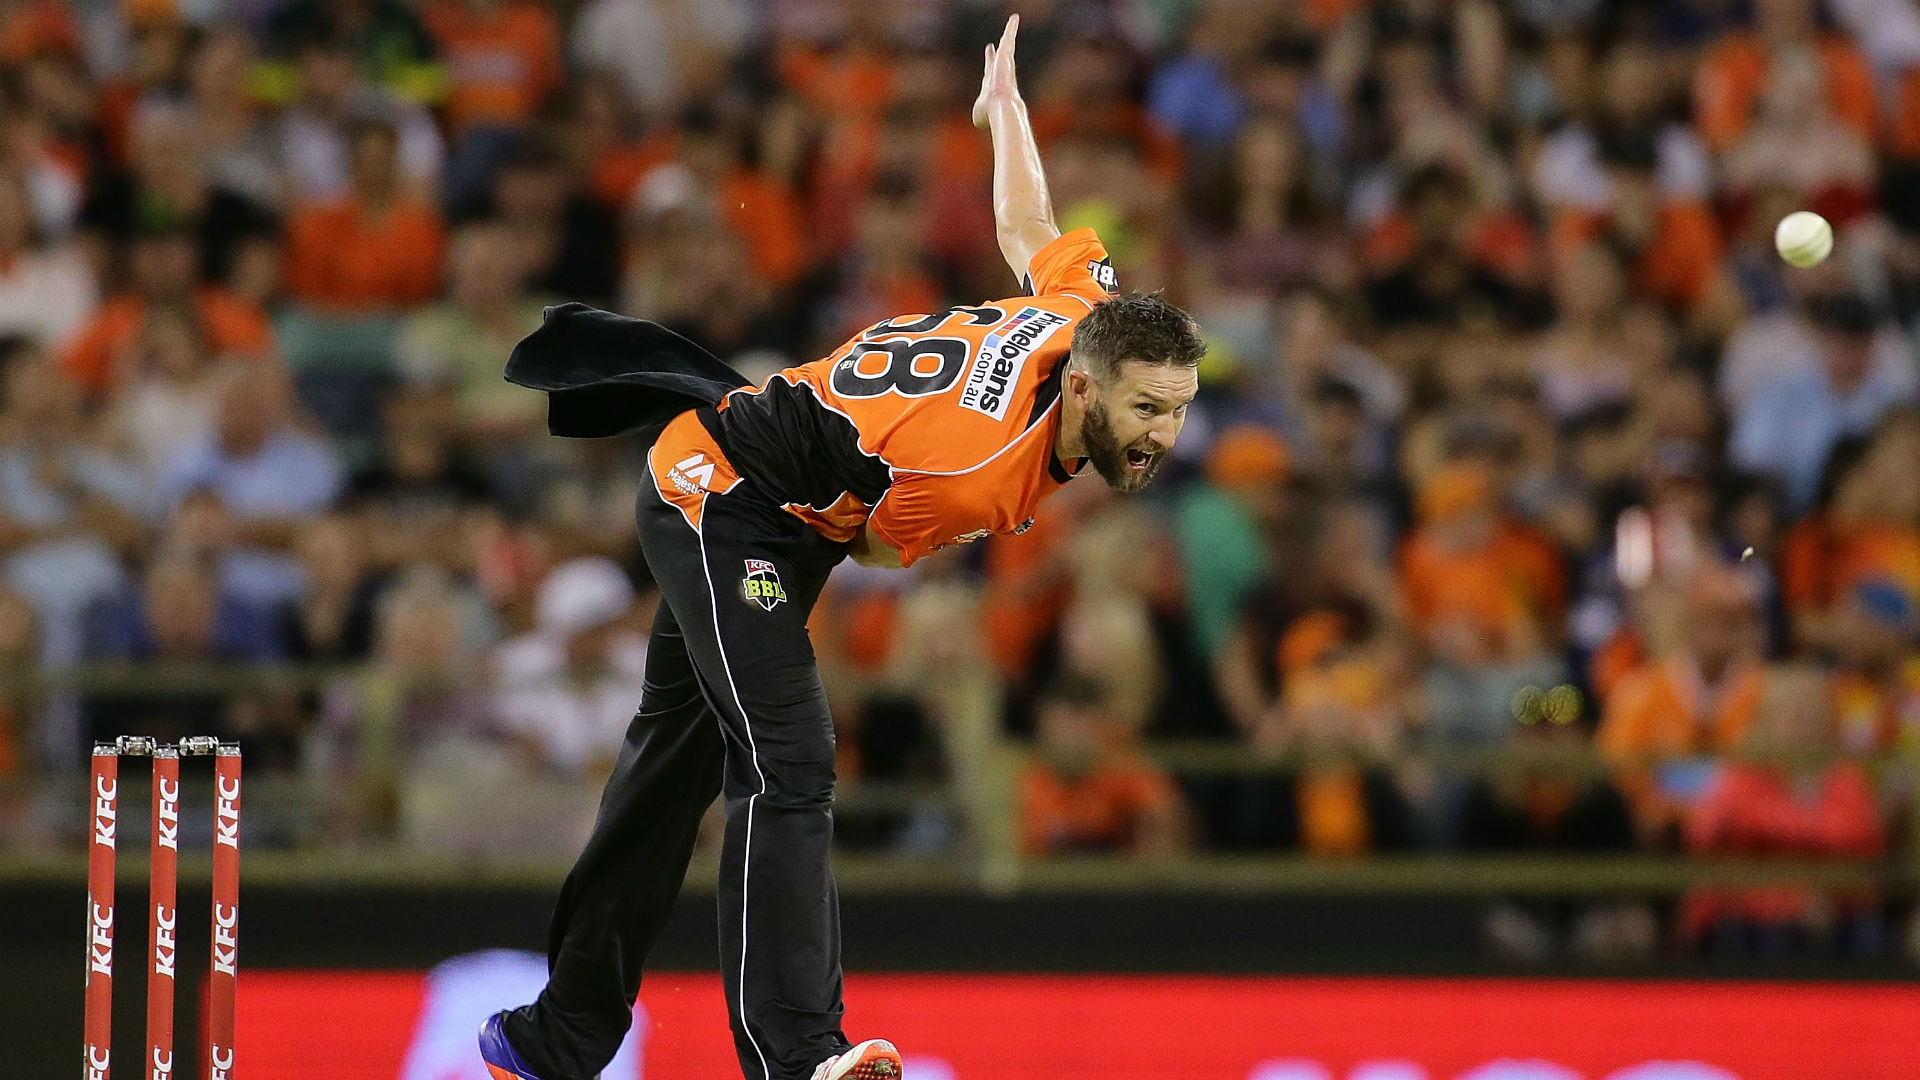 Australia announce Andrew Tye as replacement for Pat Cummins for T20Is